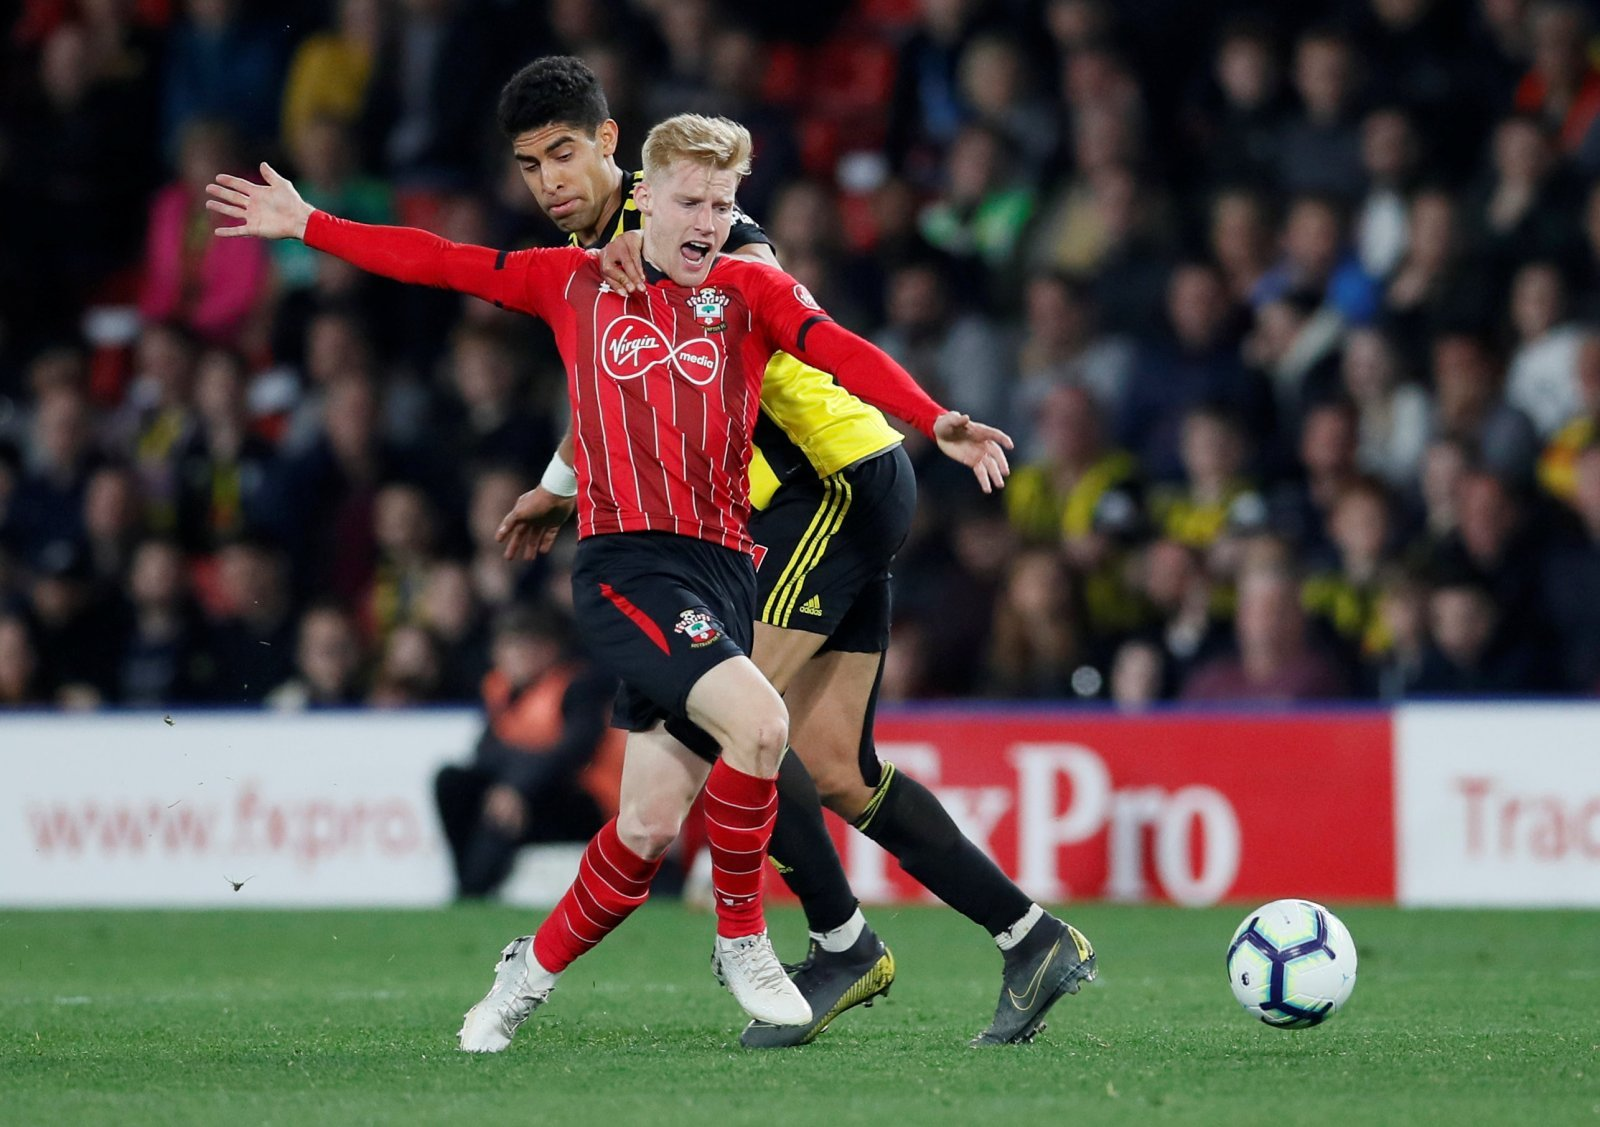 Southampton: Midfielder set to ditch St. Mary's for move abroad